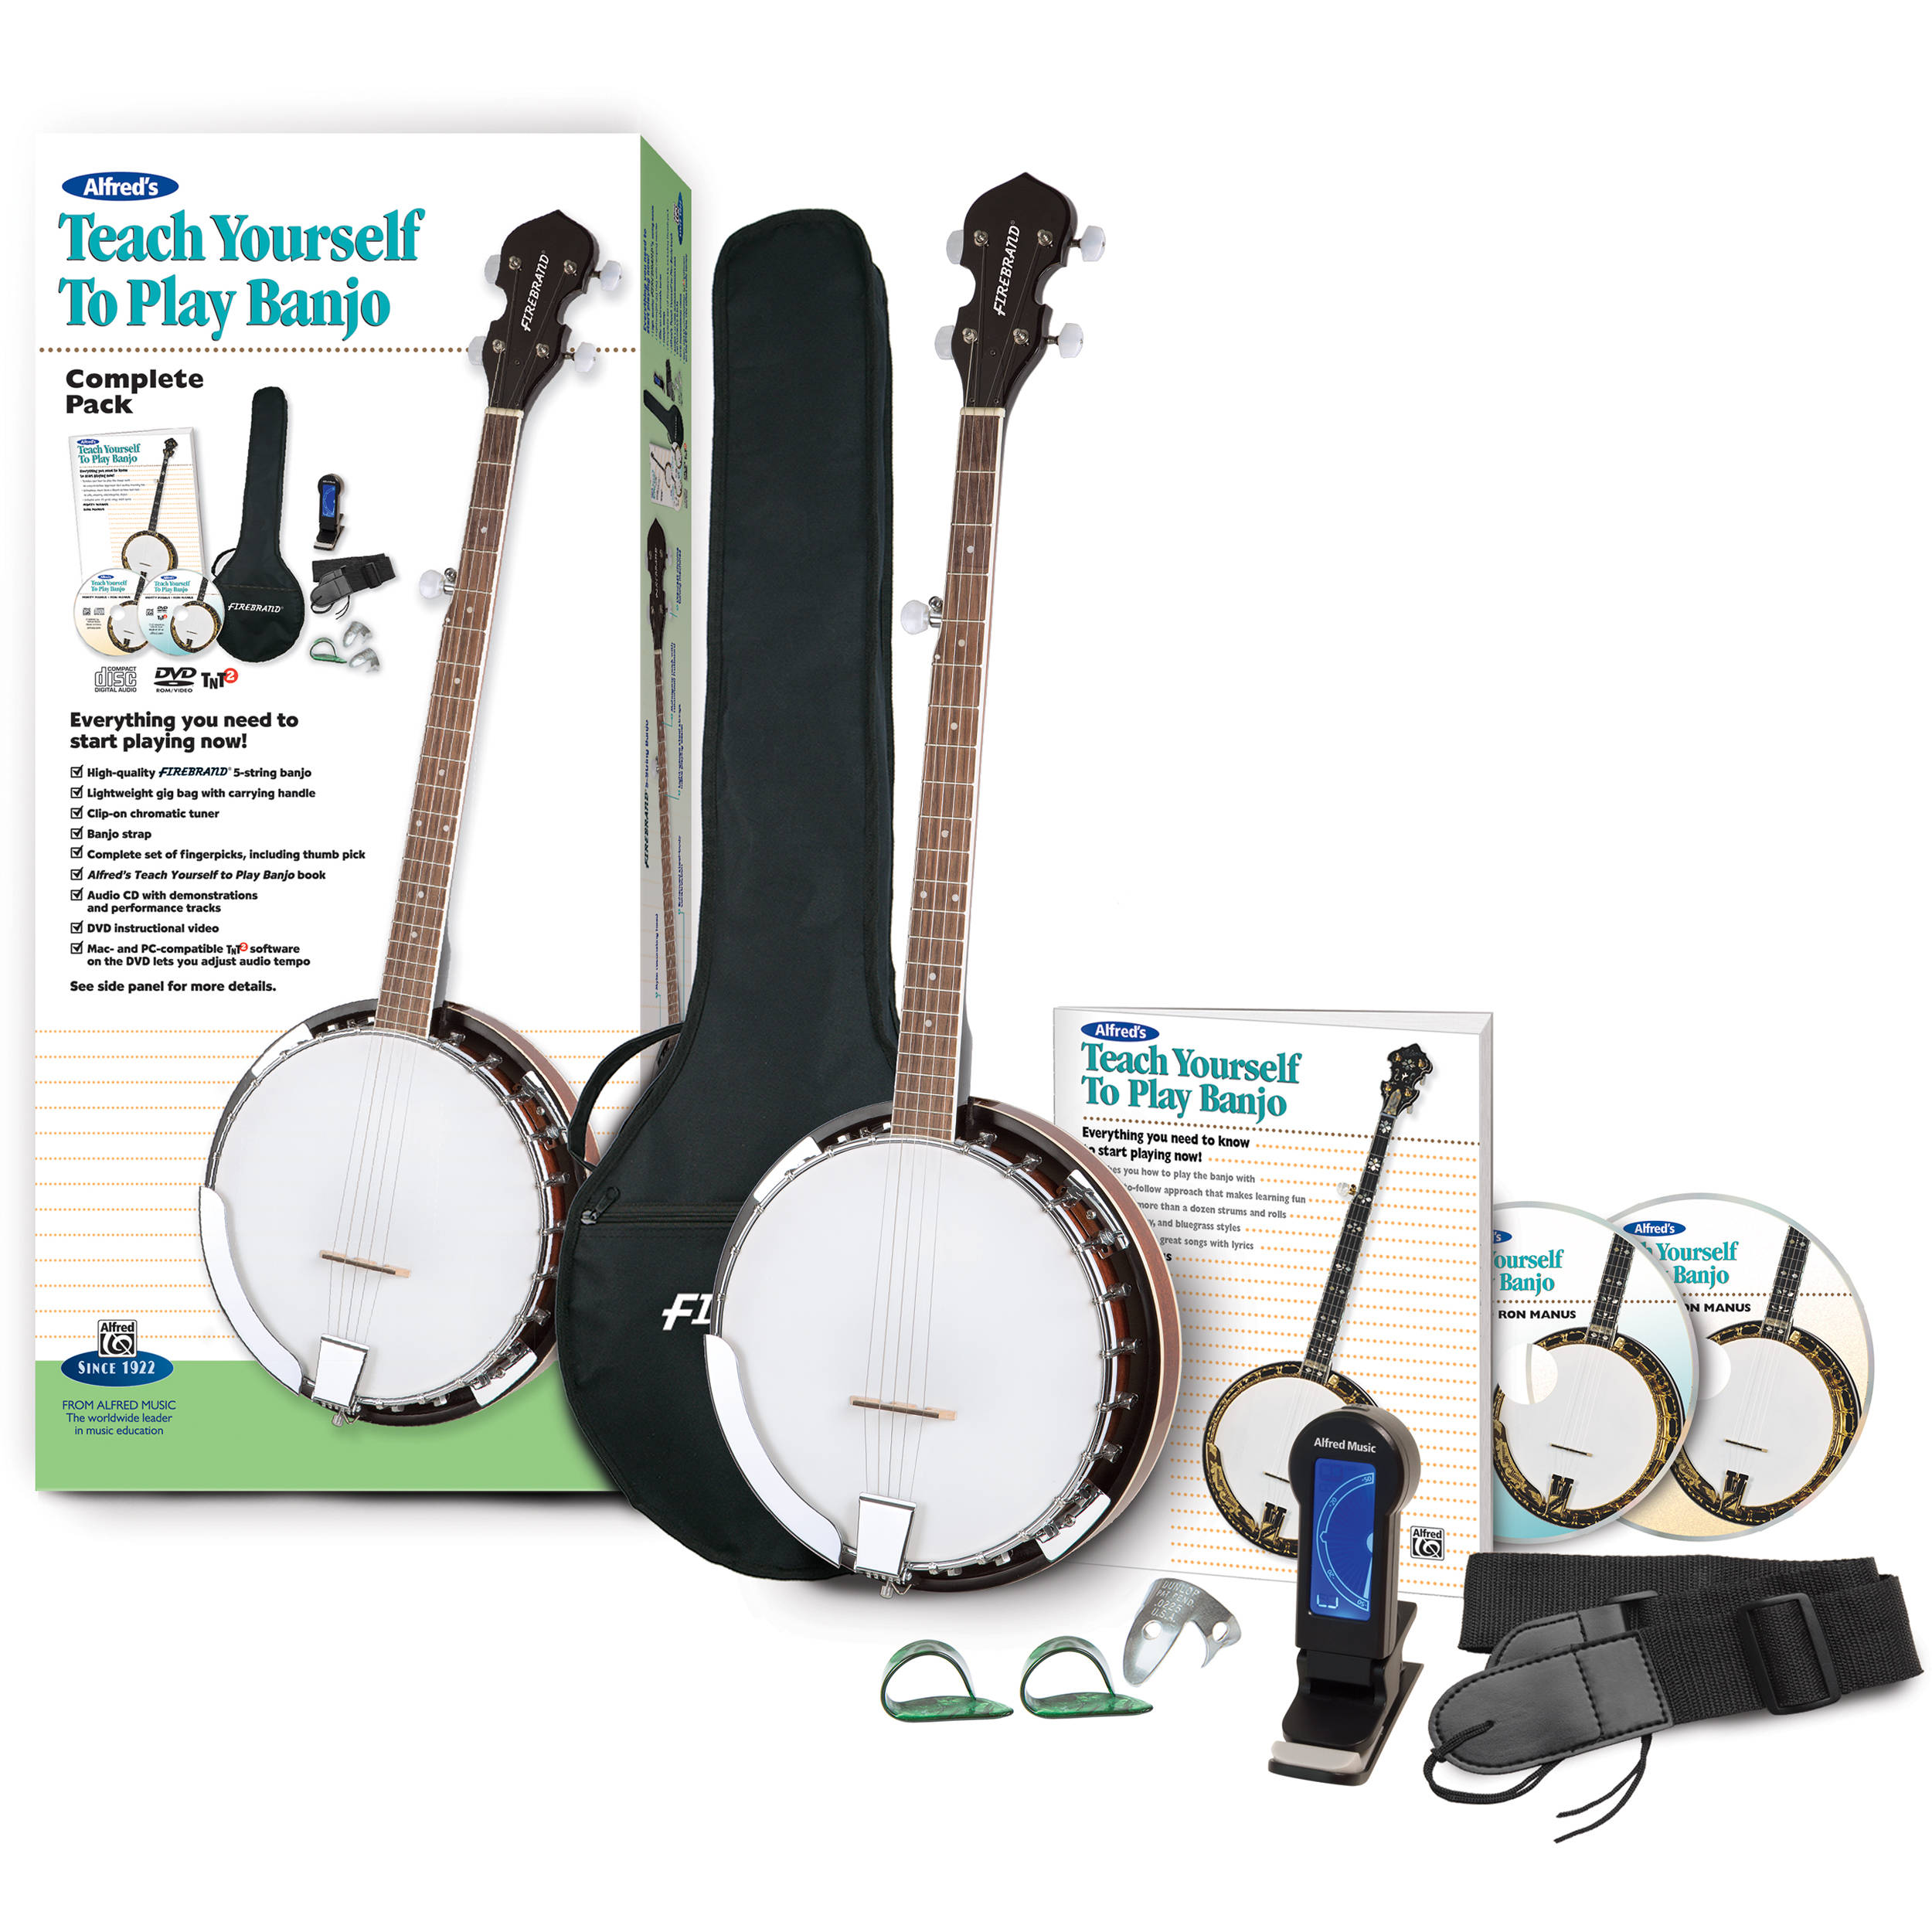 ALFRED Teach Yourself To Play Banjo Starter Pack - Firebrand Banjo &  Instructional Book